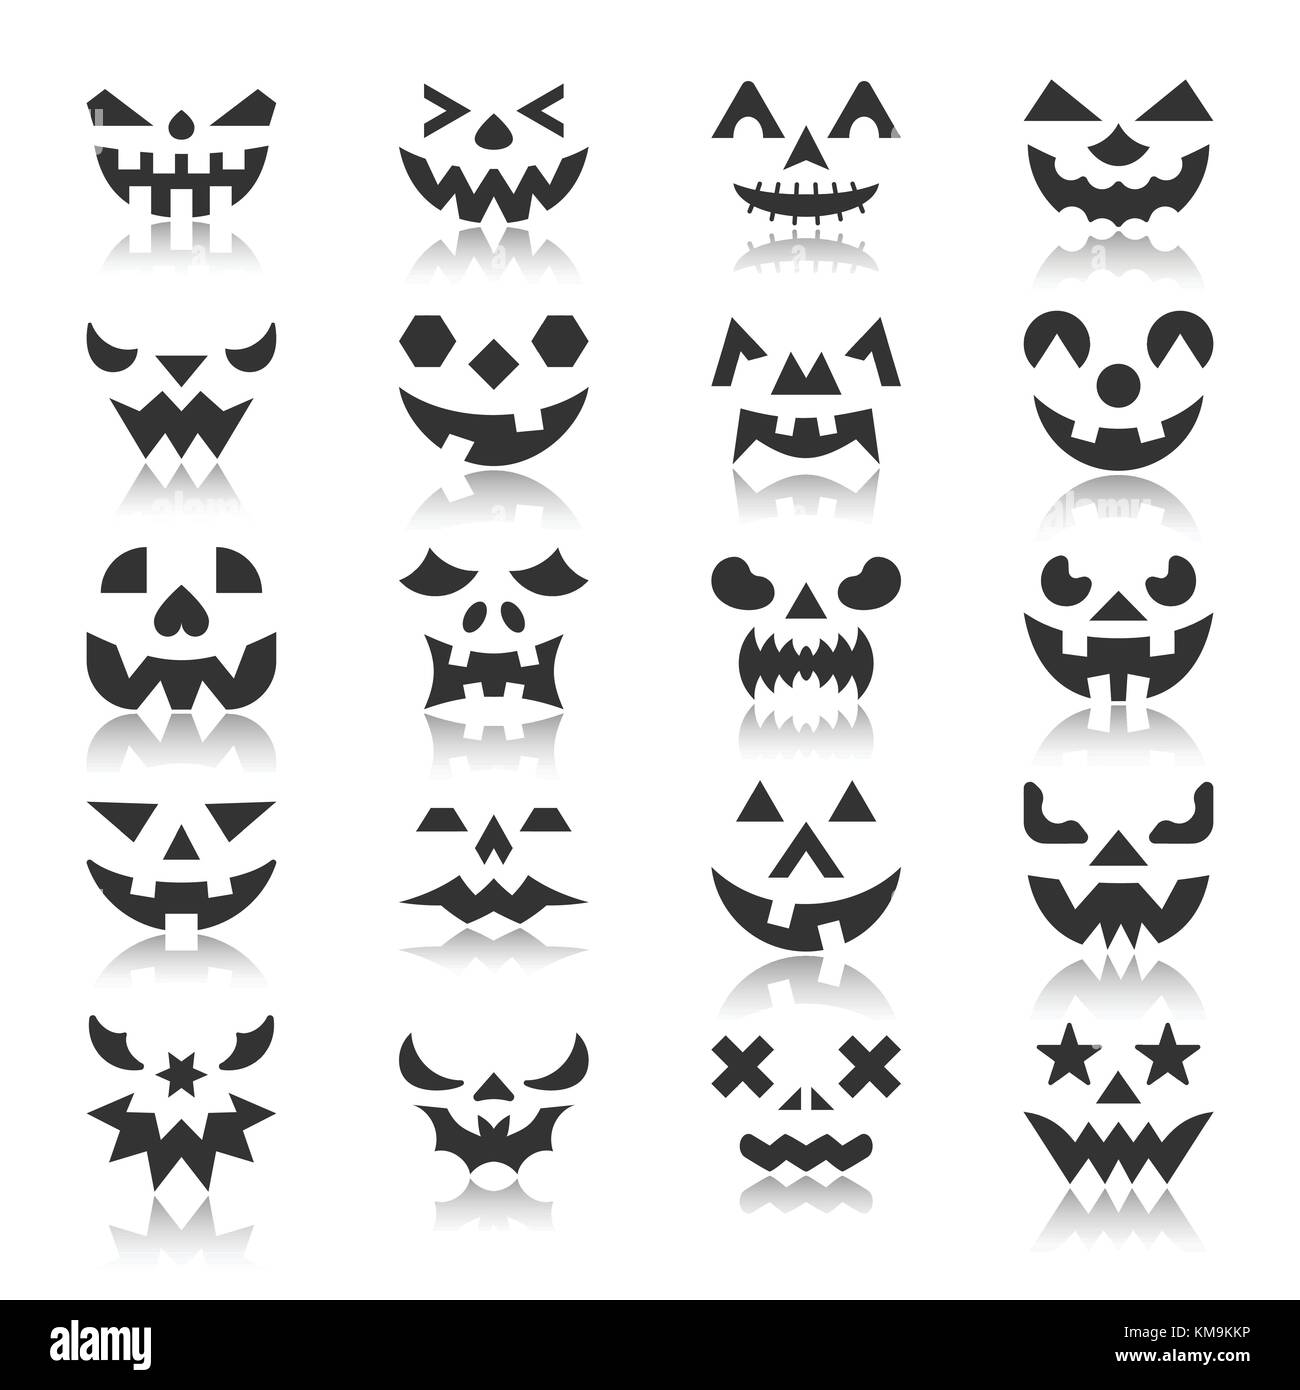 Halloween Face Icon Set Pumpkin Black Silhouette With Reflection